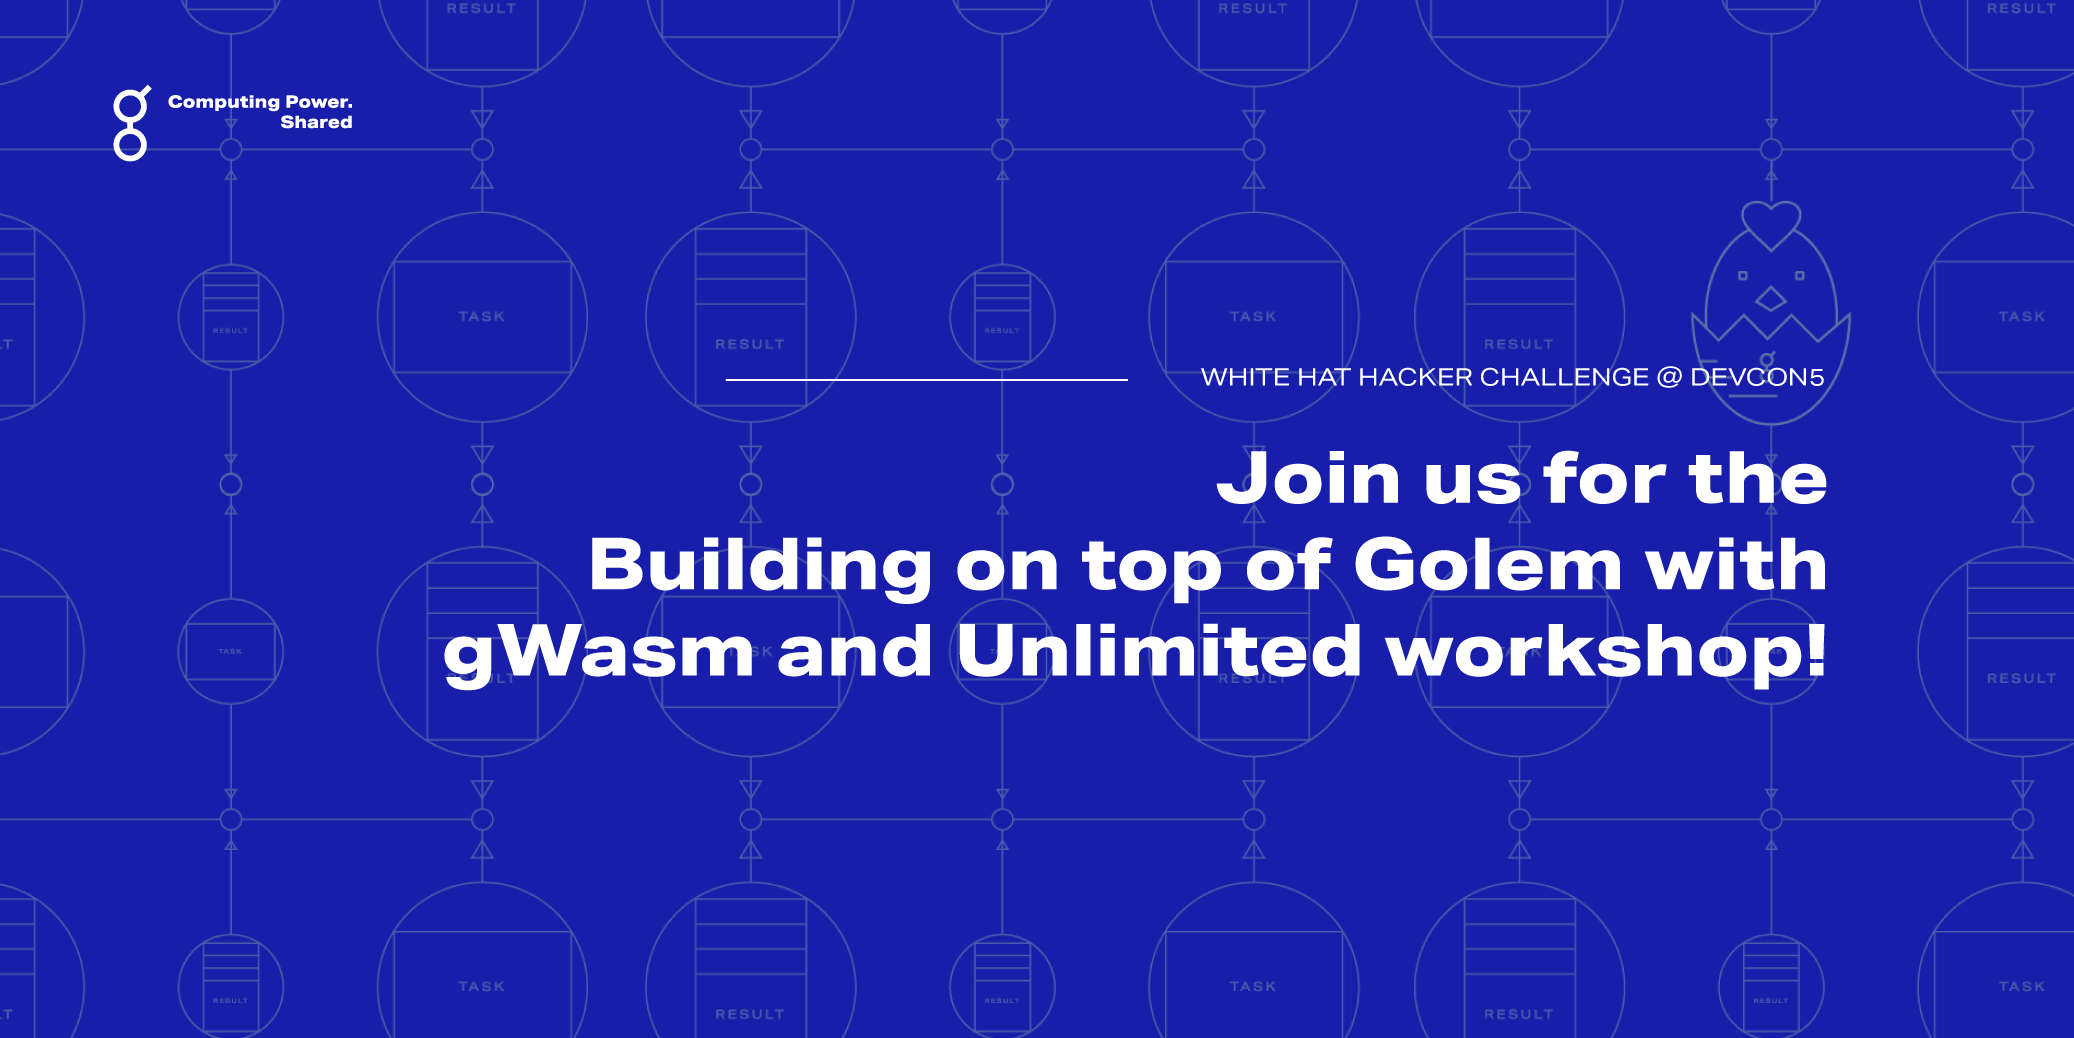 White hat hacker challenge @ DEVCON5 - but with a twist - Join us for the Building on top of Golem with gWasm and Unlimited workshop!